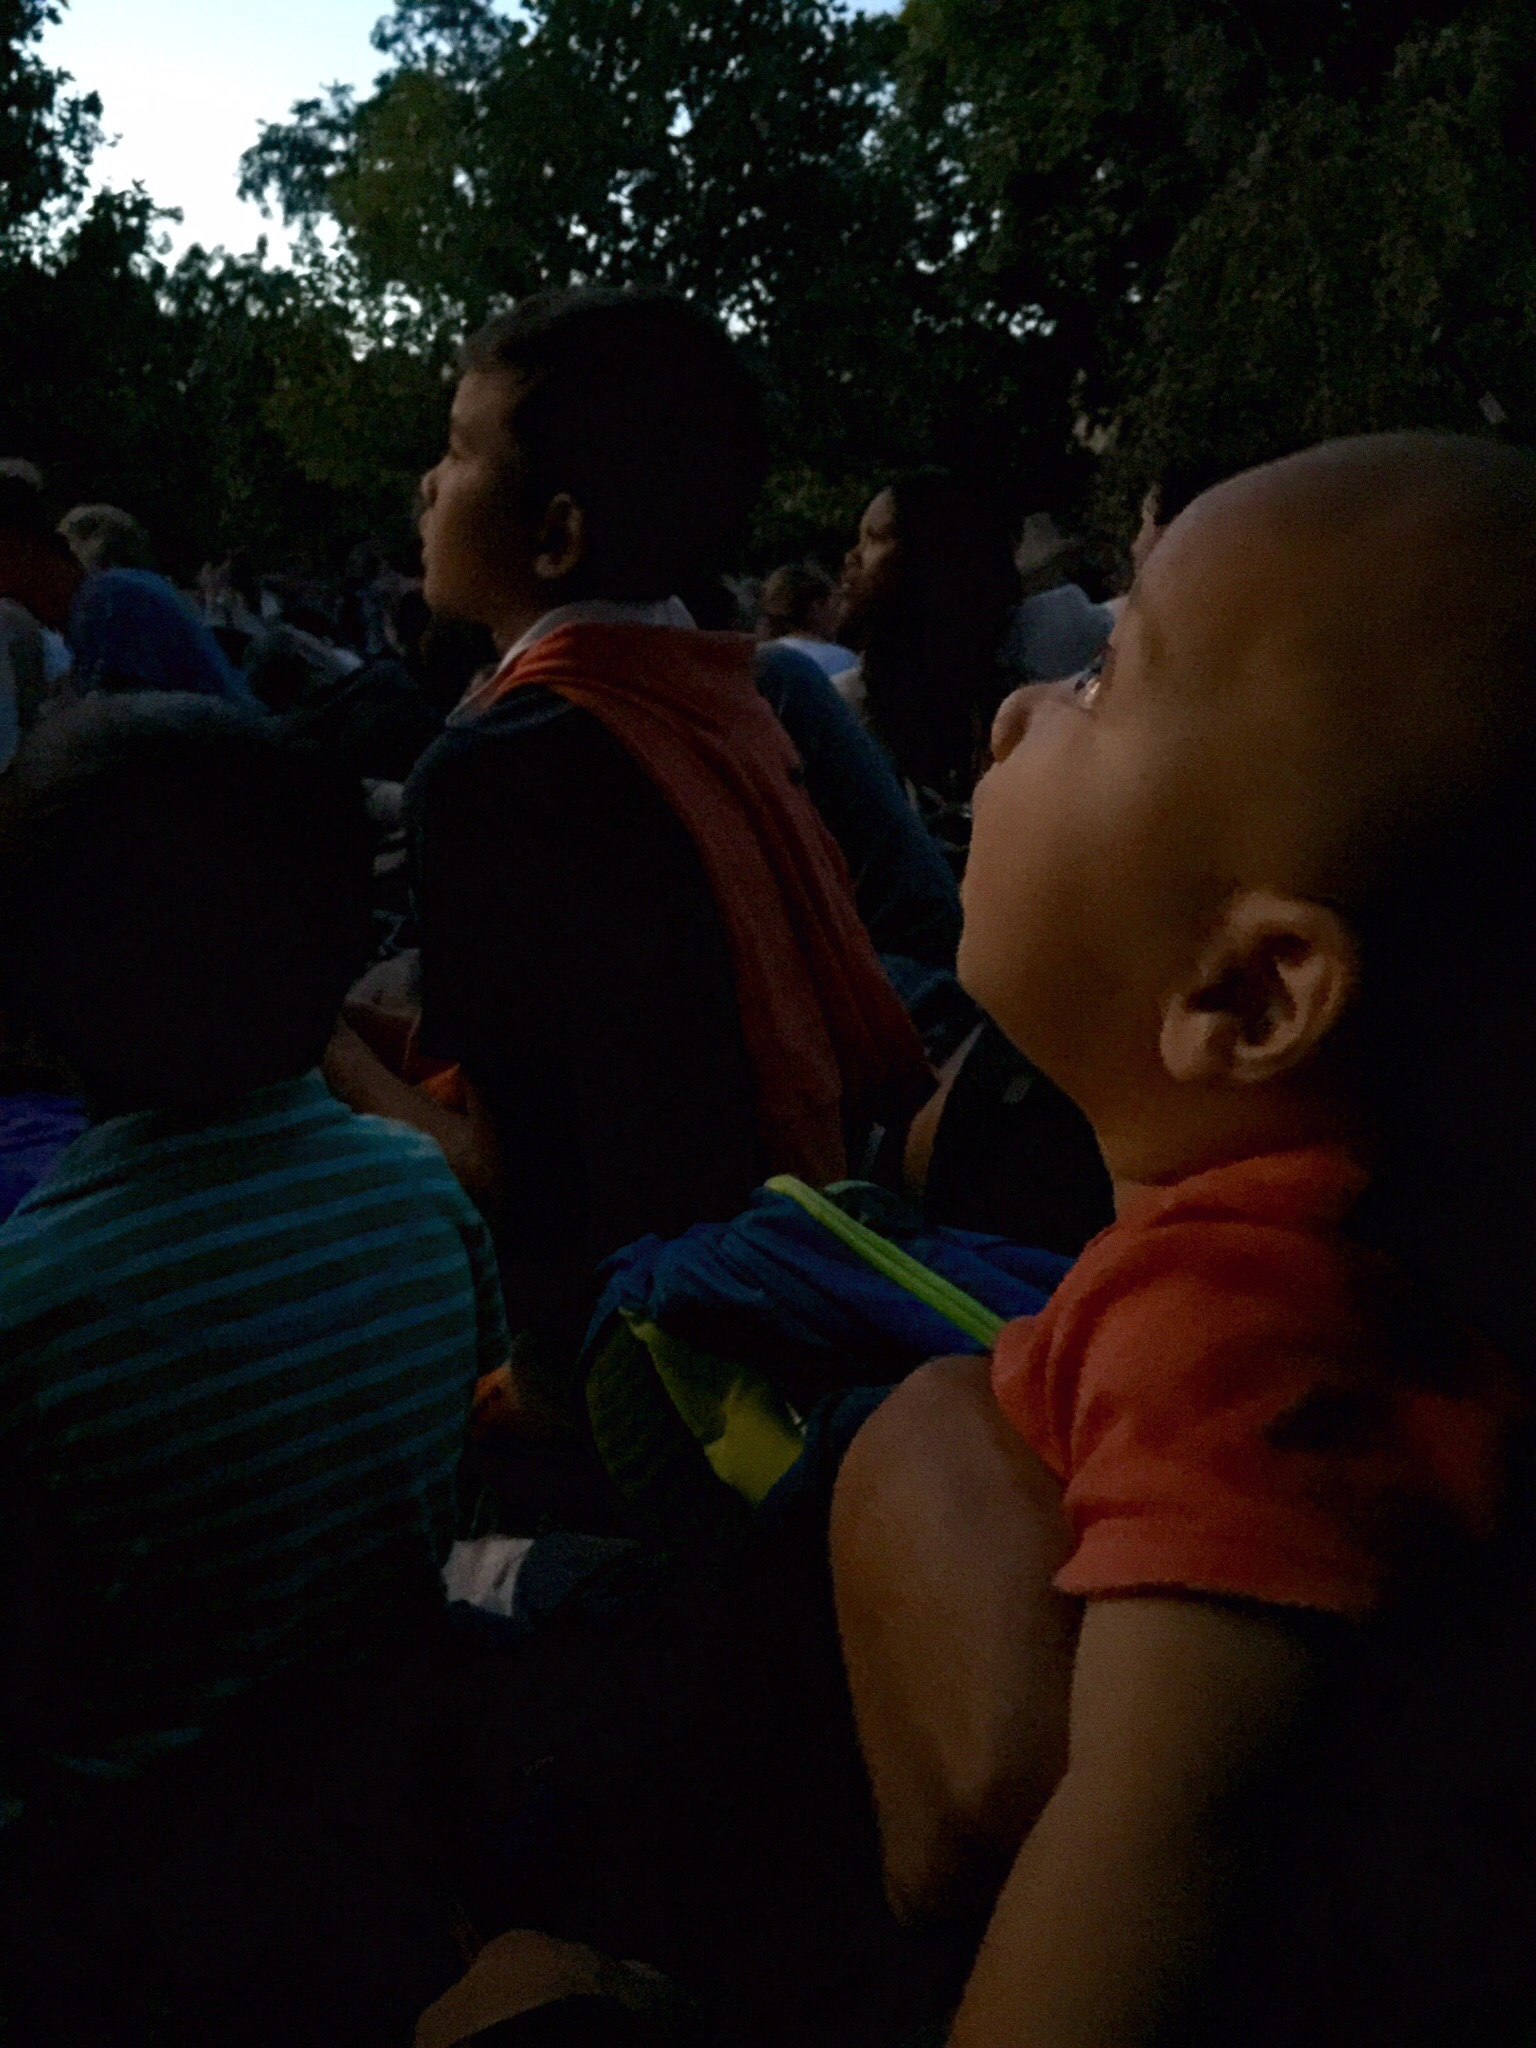 Our infant son watching the tower sparkle during the concert. He slept through the fireworks show, which didn't start until 11pm.